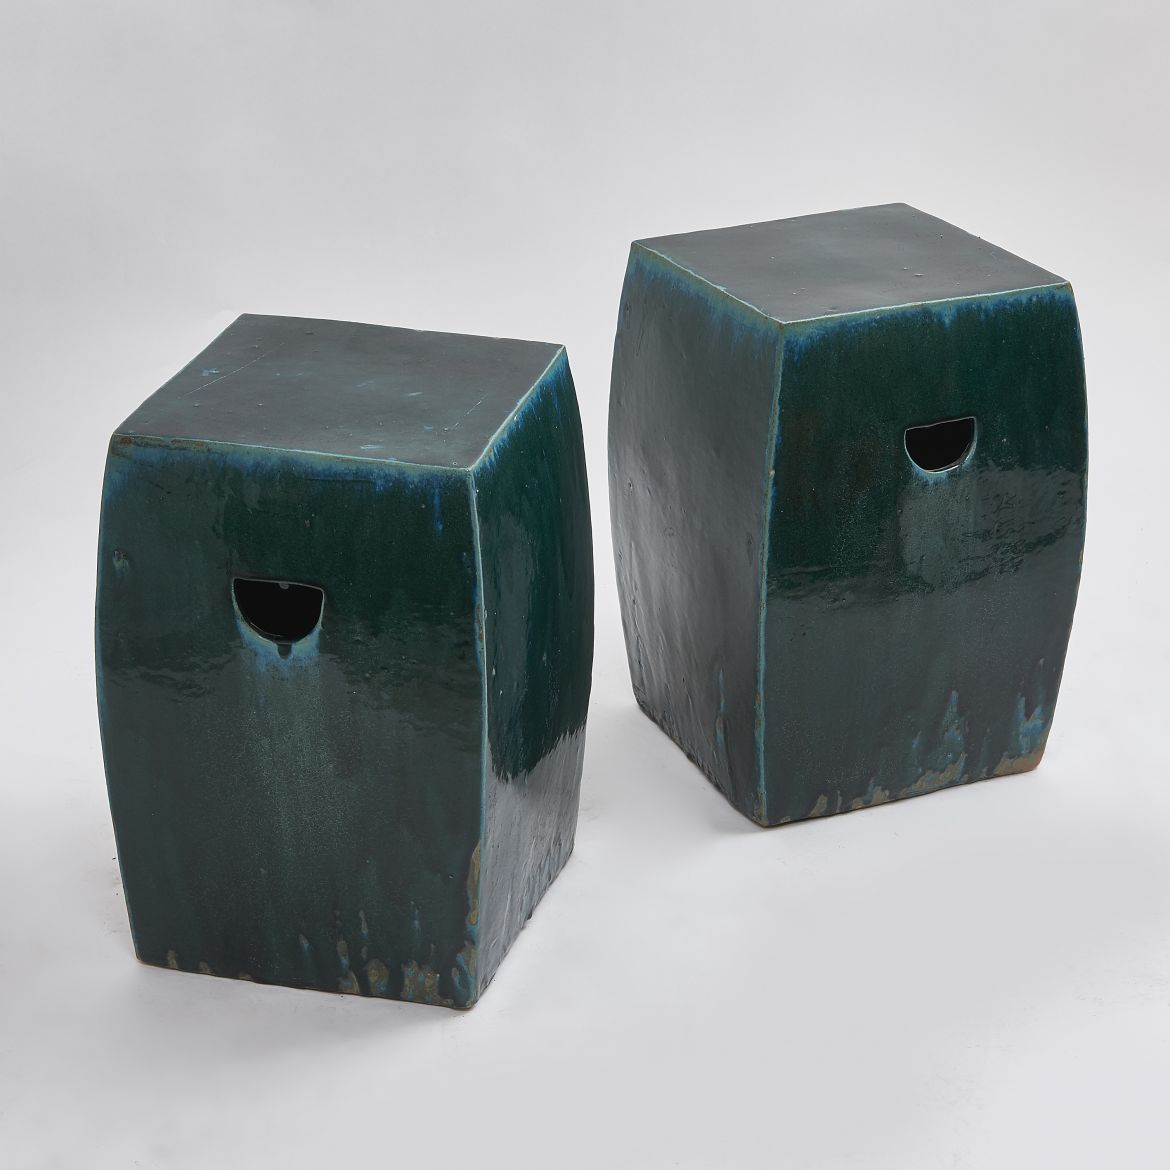 Pair of Chinese Green Square Stoneware Stools